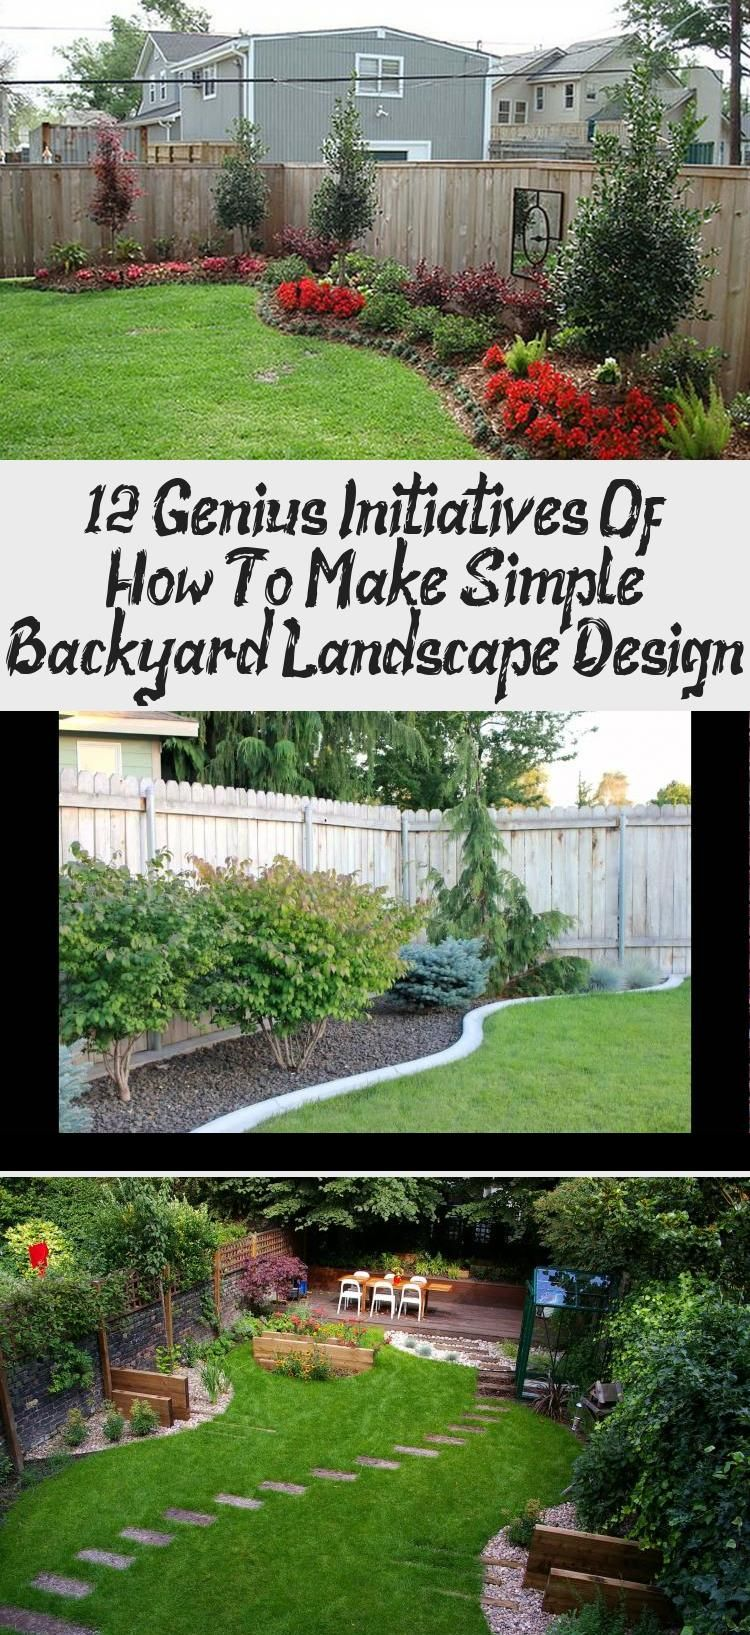 Photo of Simple Backyard Landscape Designs Home Design pertaining to 12 Genius Initiative…